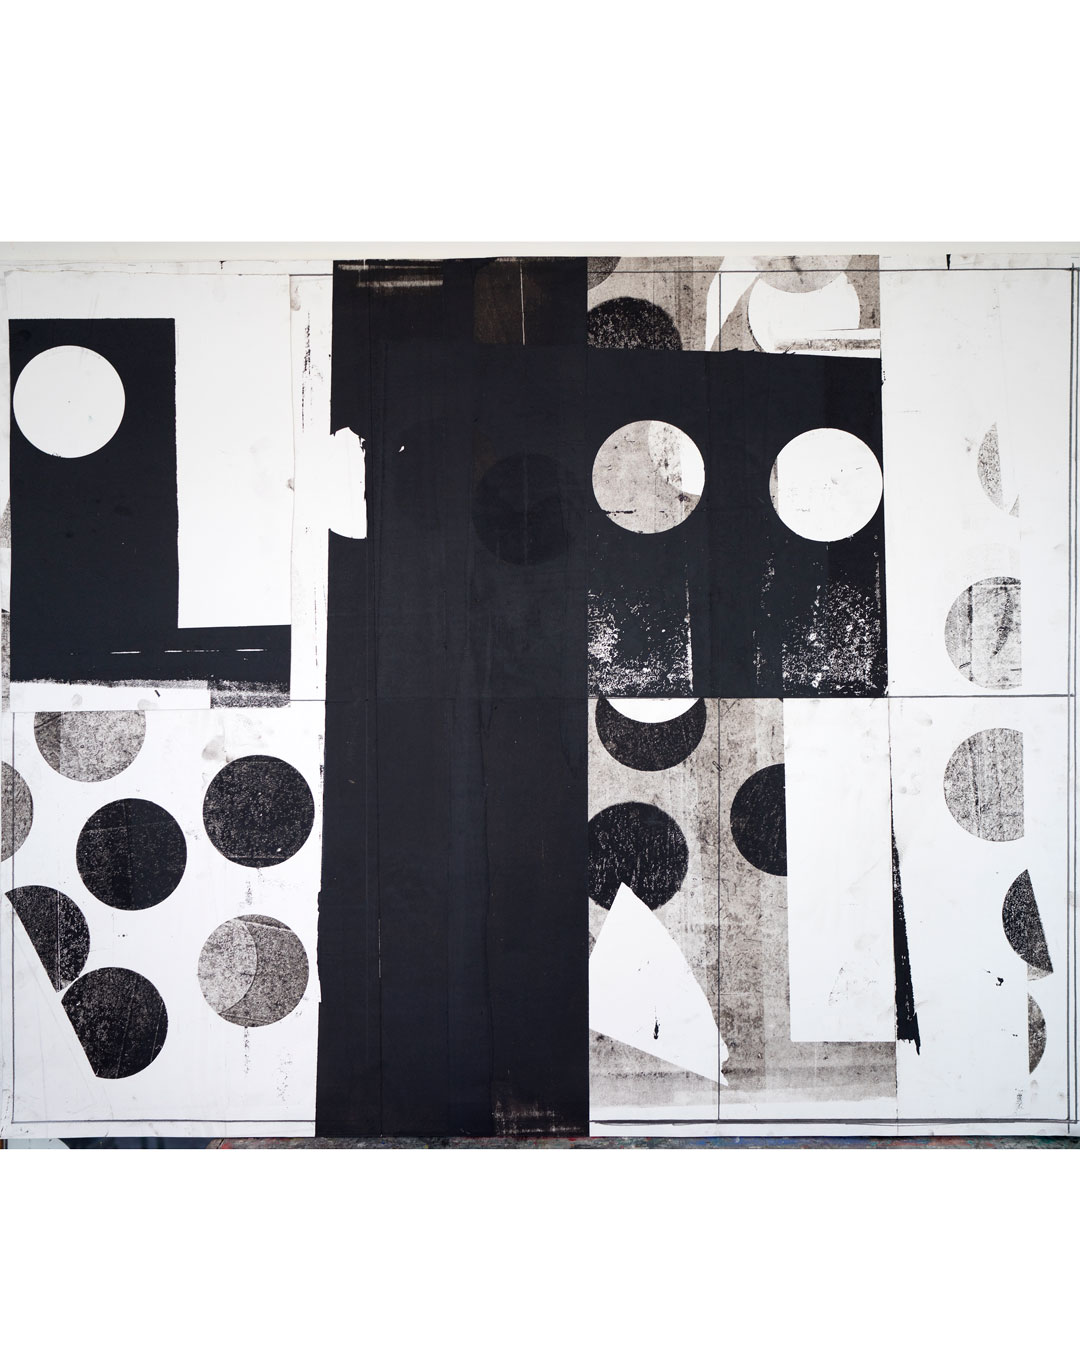 Piet Dieleman, untitled, 2020, collage, oil based monotype ink, pencil, acrylic binder on paper, 1290 x 1590 mm, €3270